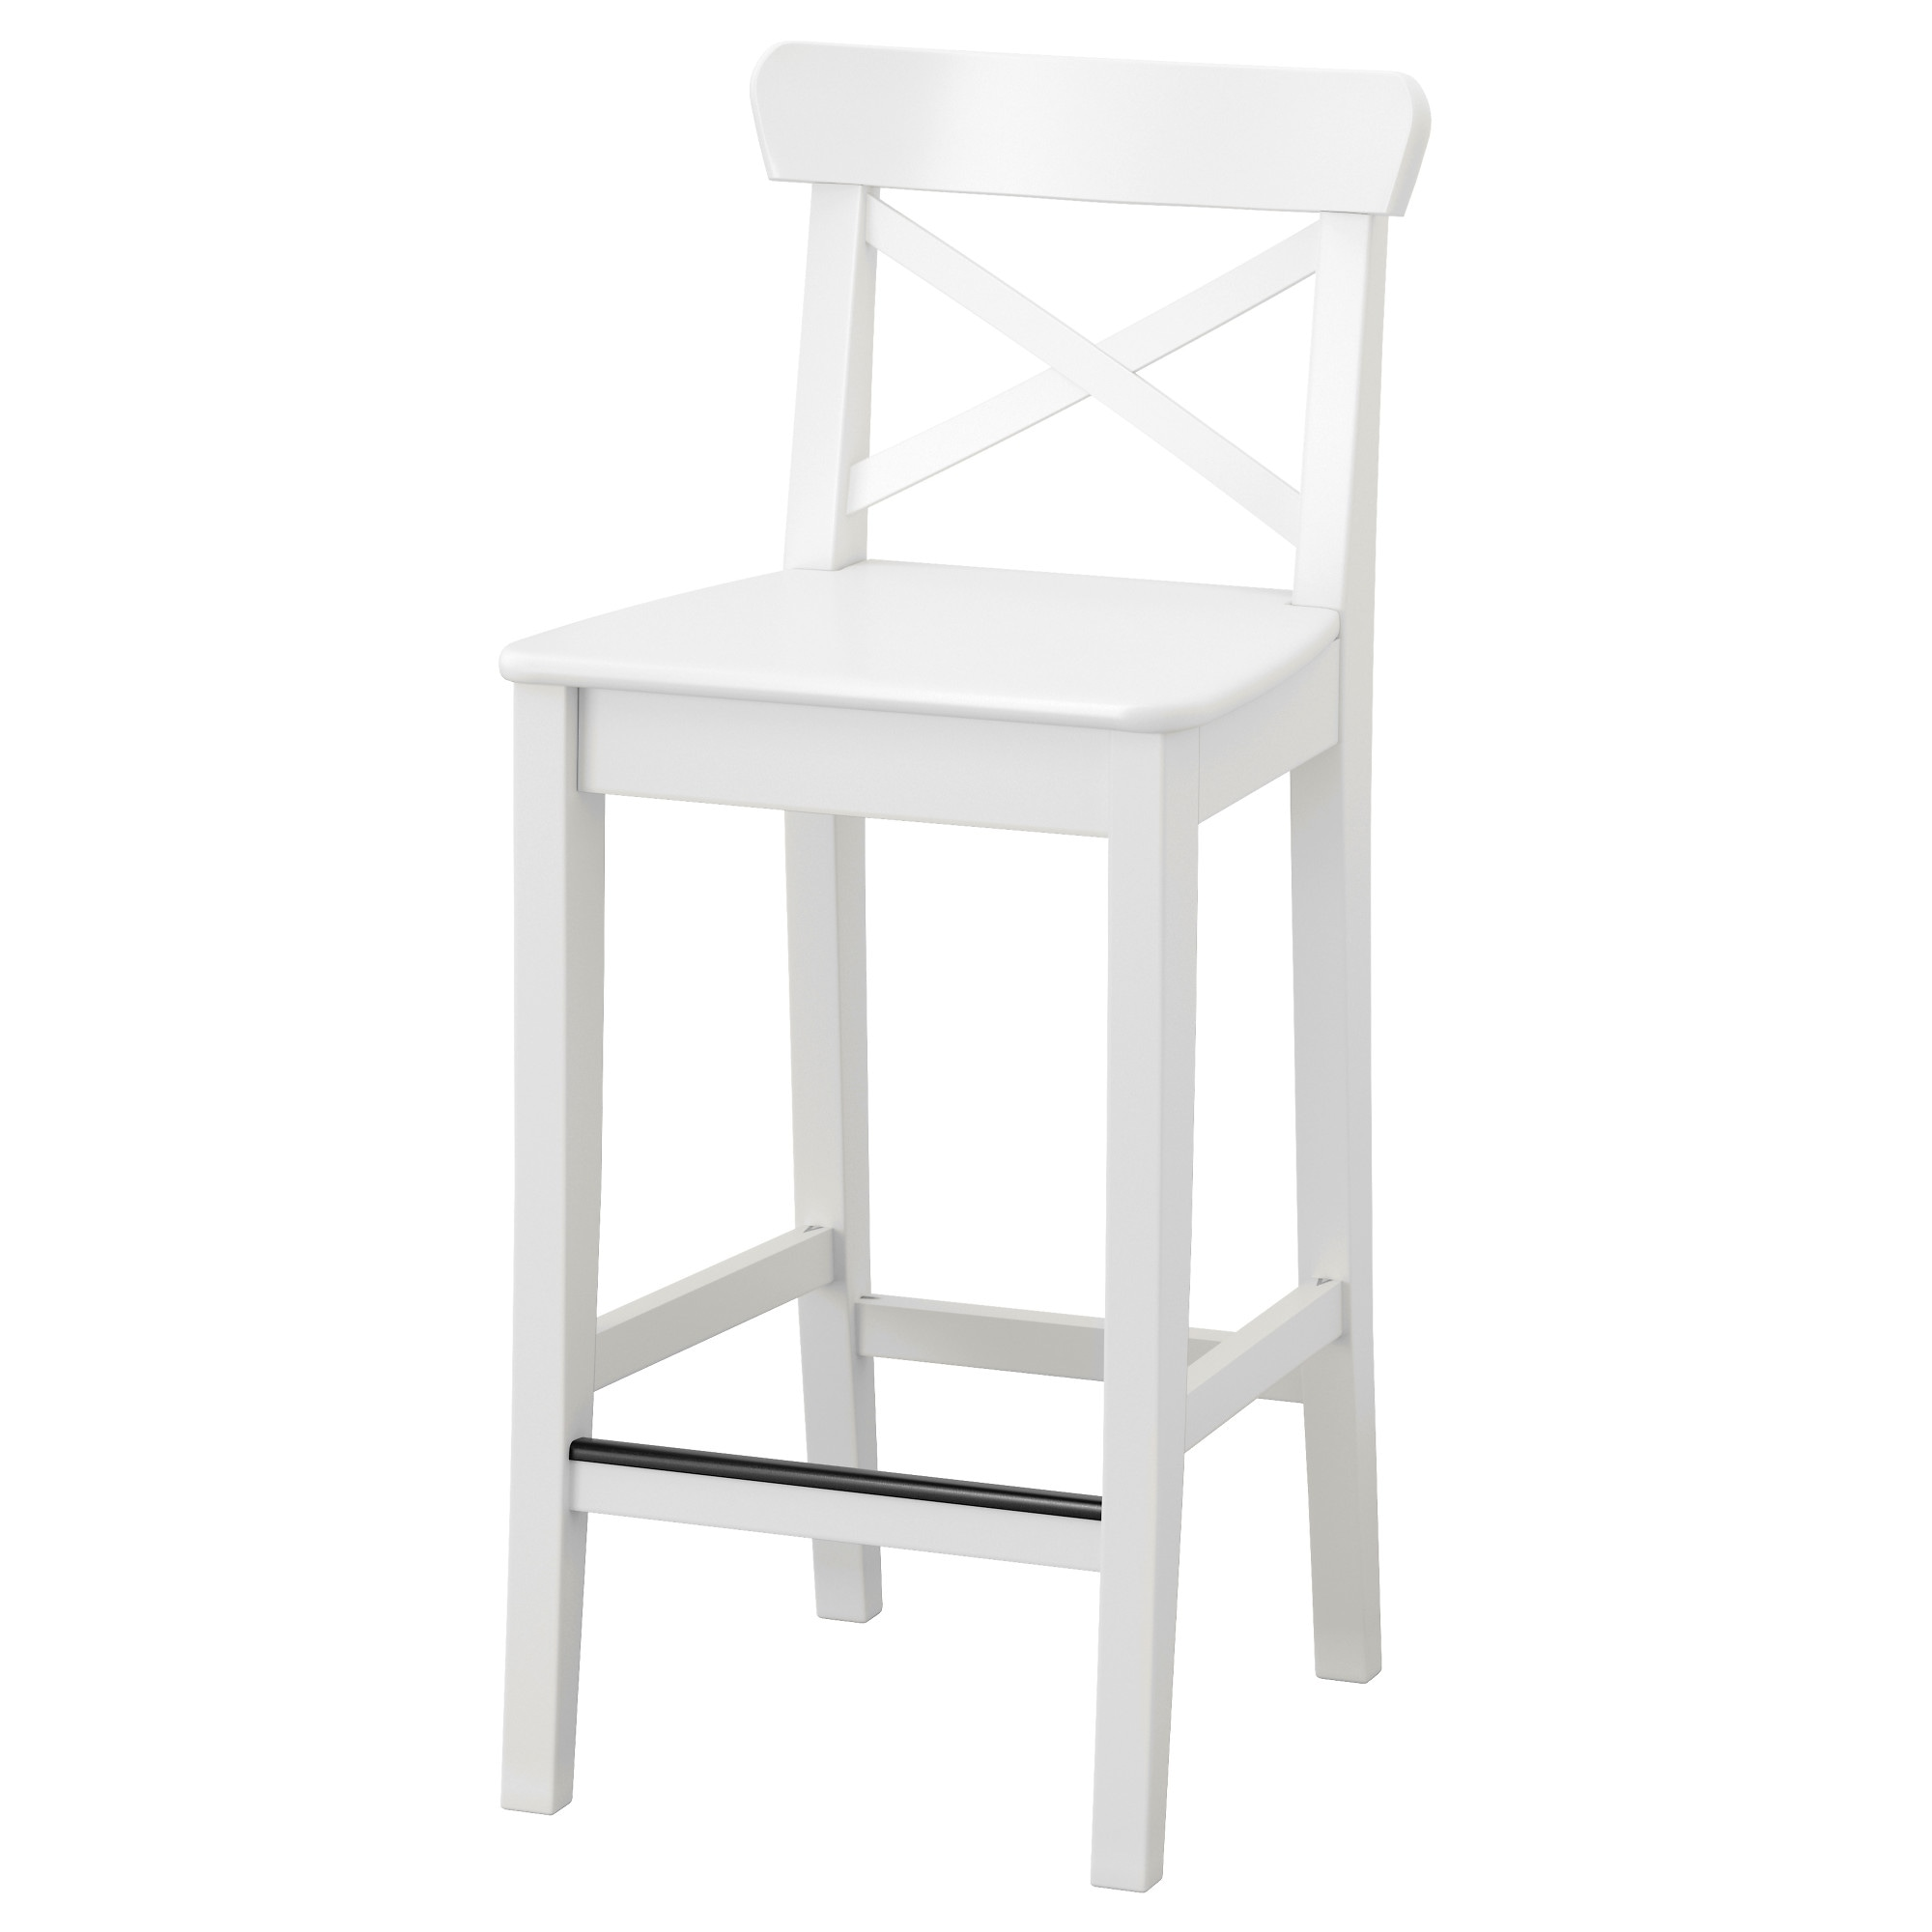 INGOLF Bar Stool With Backrest   24 3/4